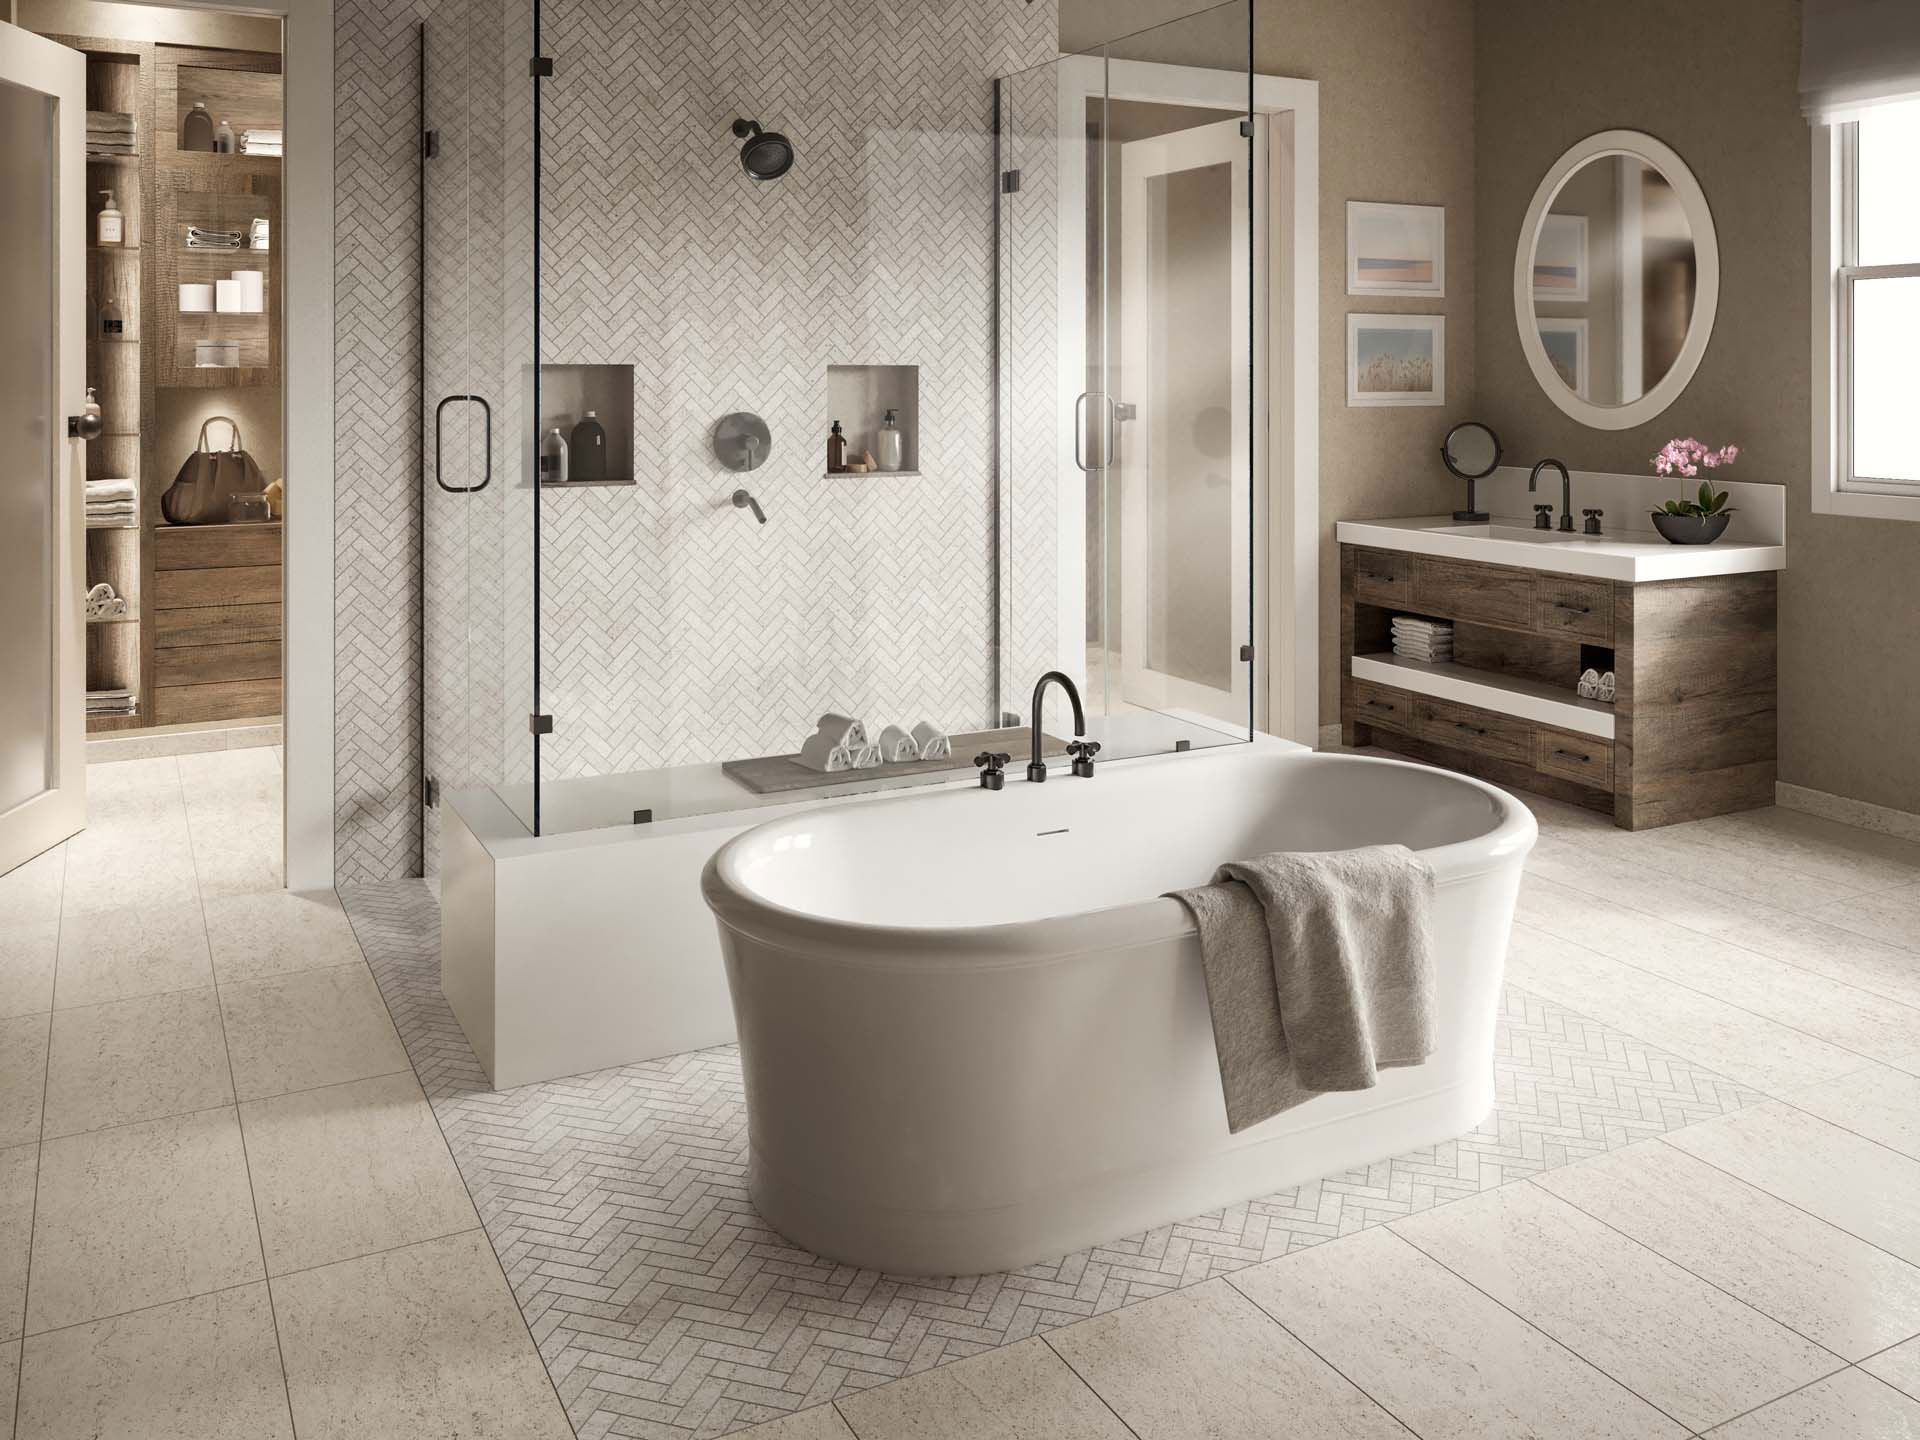 Atlas Concorde USA Rise collection used on the floor and wall of a bathroom and shower.